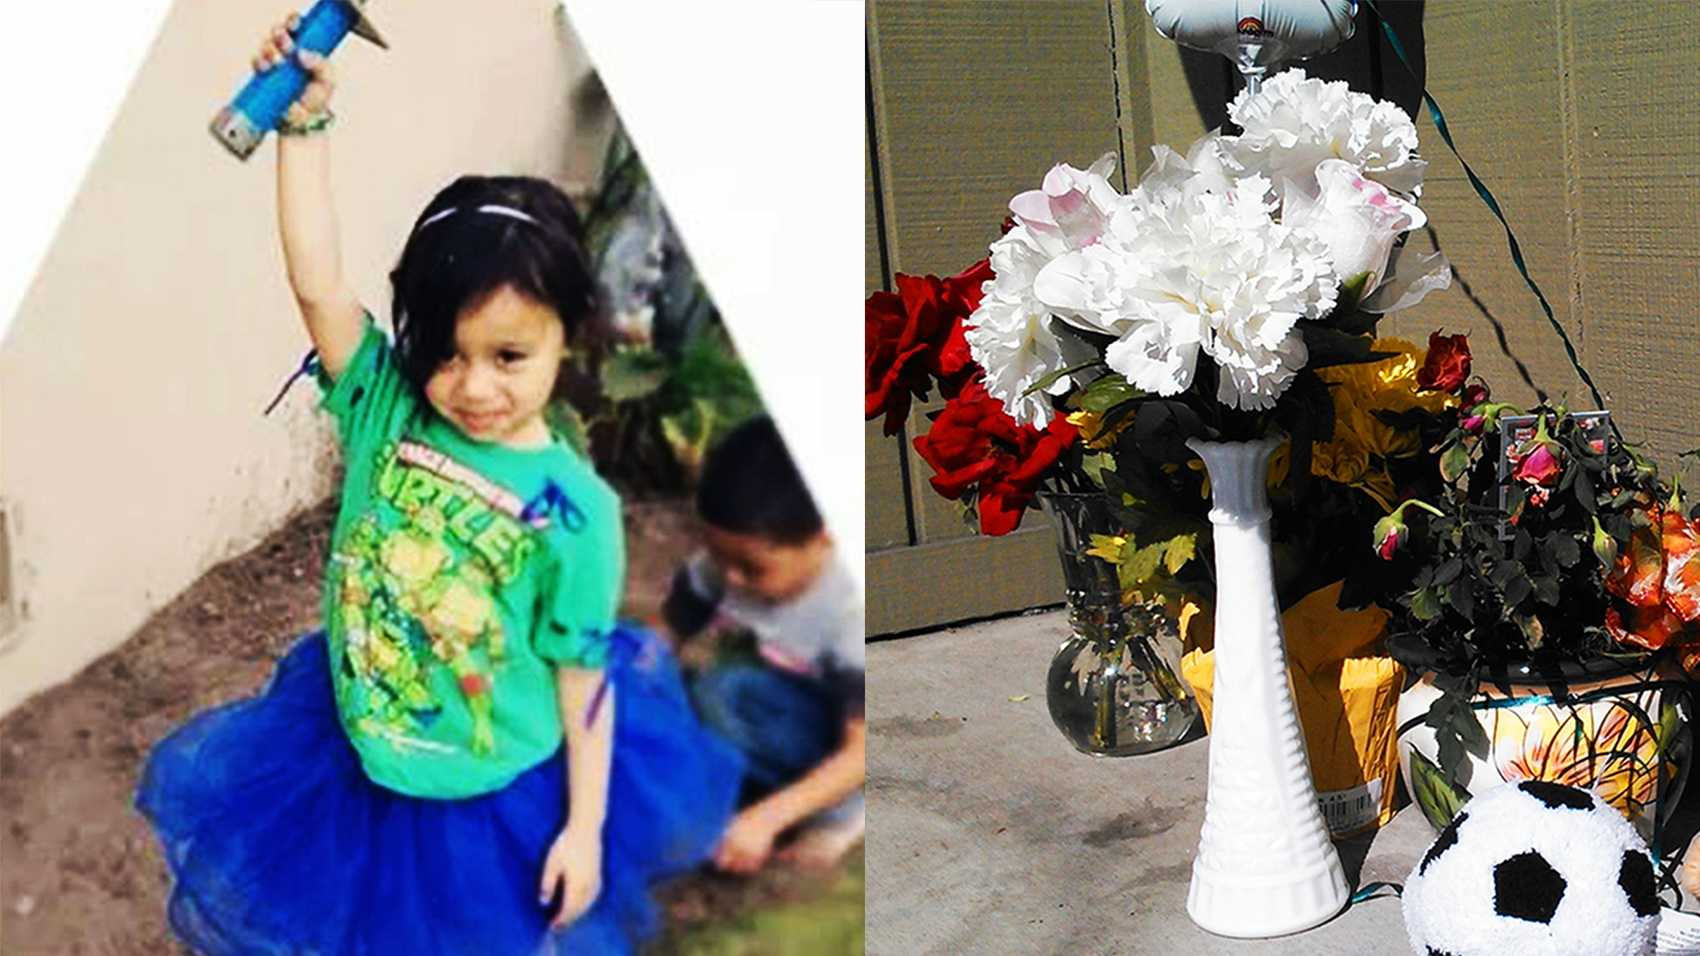 Flowers and stuffed animals were left where Jaelyn Marie Zavala was shot.